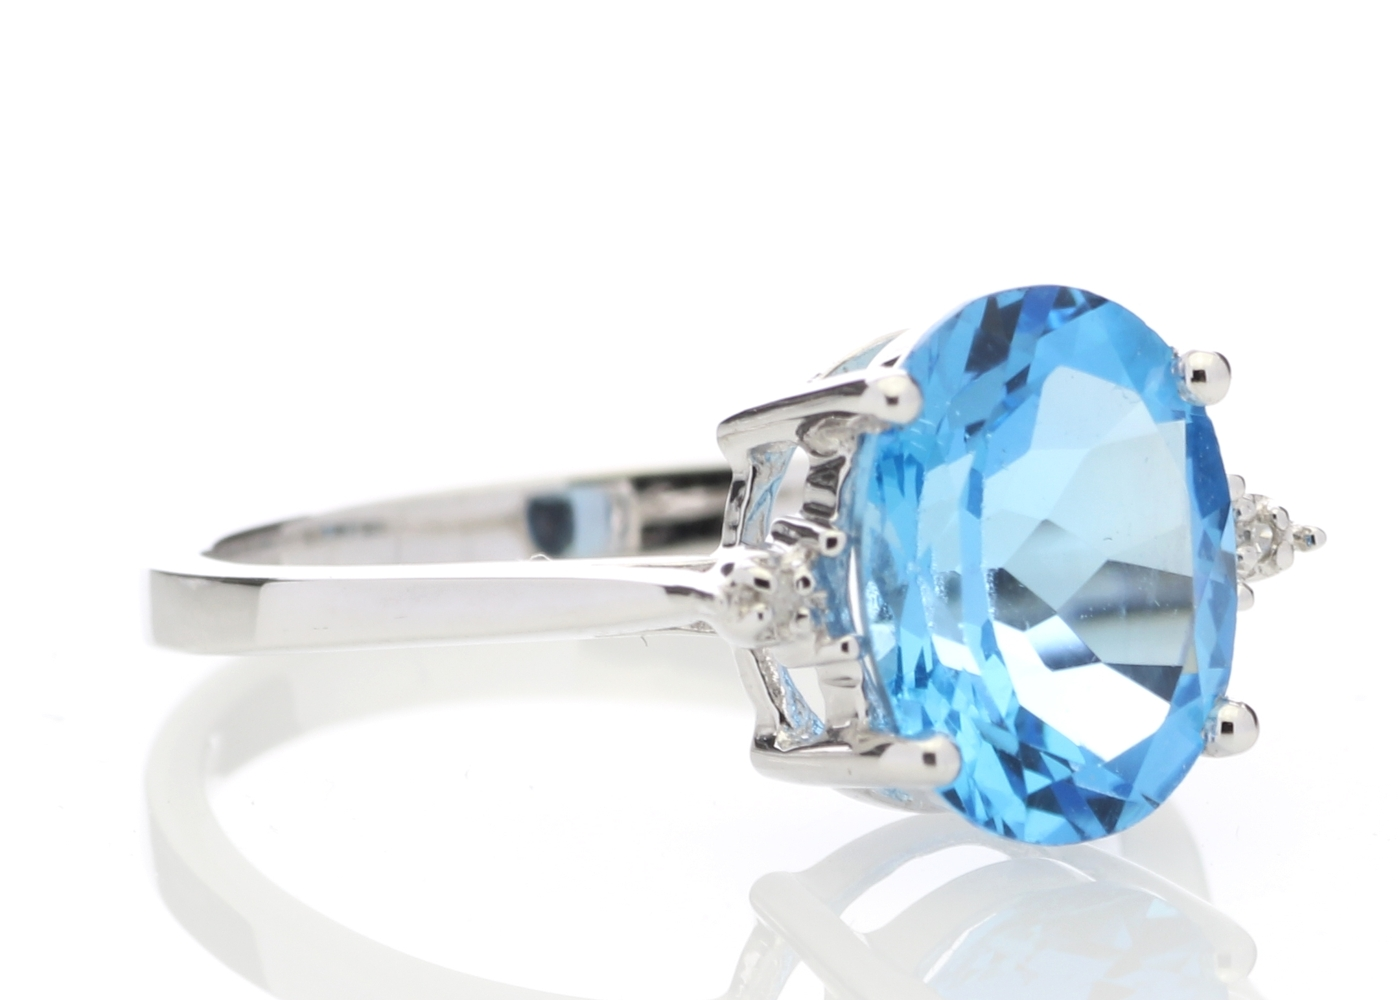 9ct White Gold Diamond And Blue Topaz Ring - Image 4 of 6